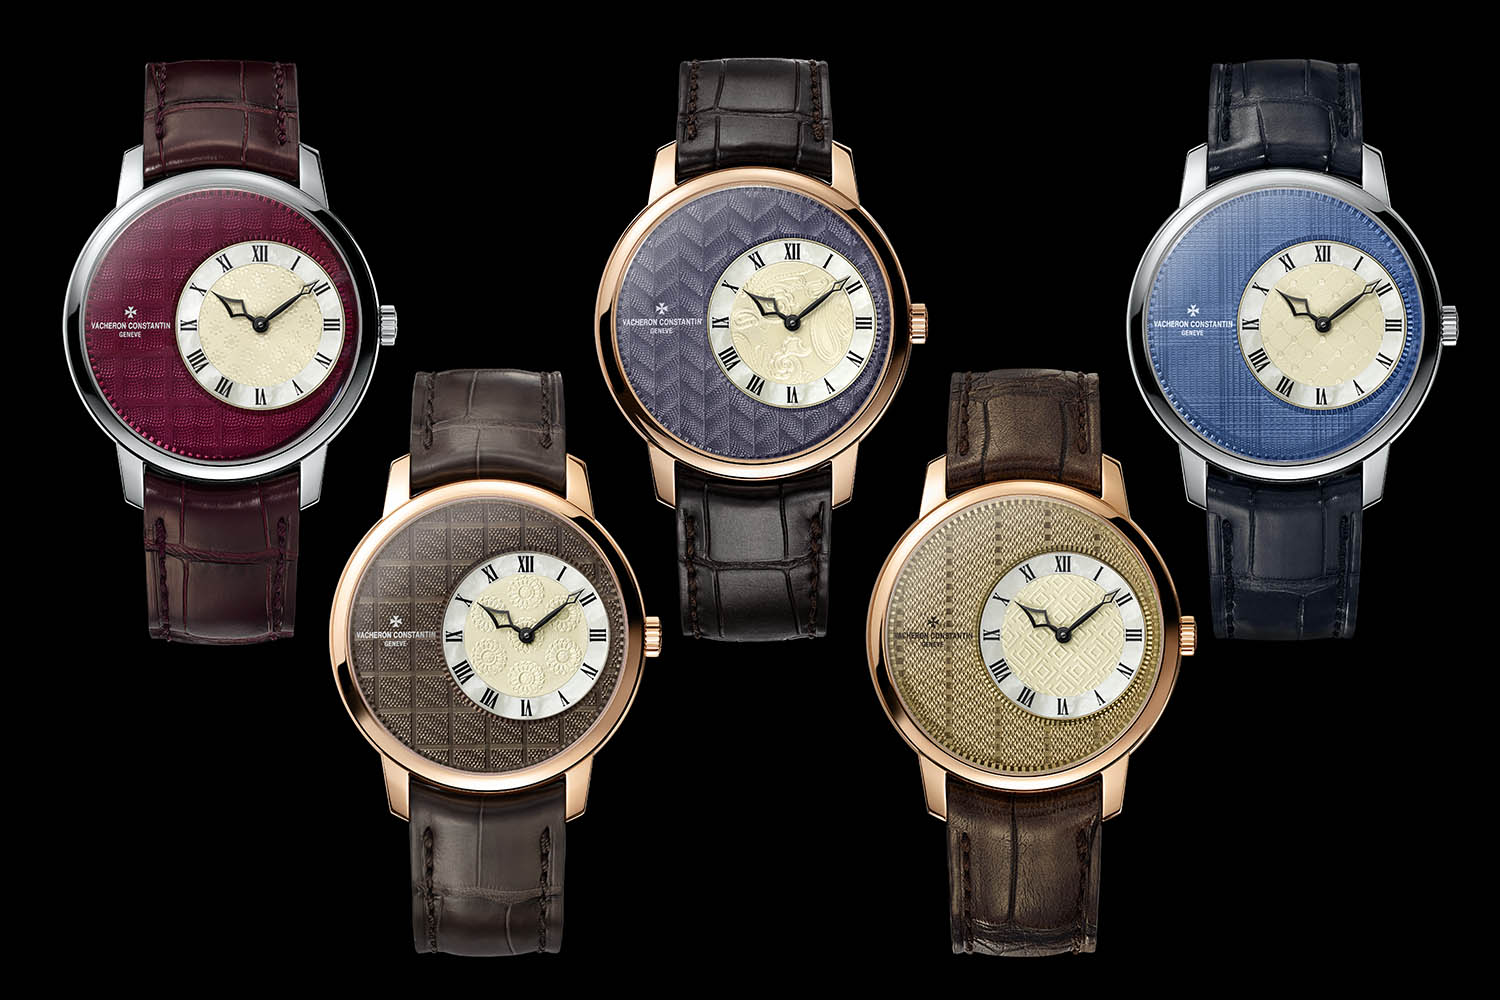 Execllent Vacheron Constantin Replica Metiers d'Art Classiness Sartoriale, Inspired From The Typical Masculine Clothing